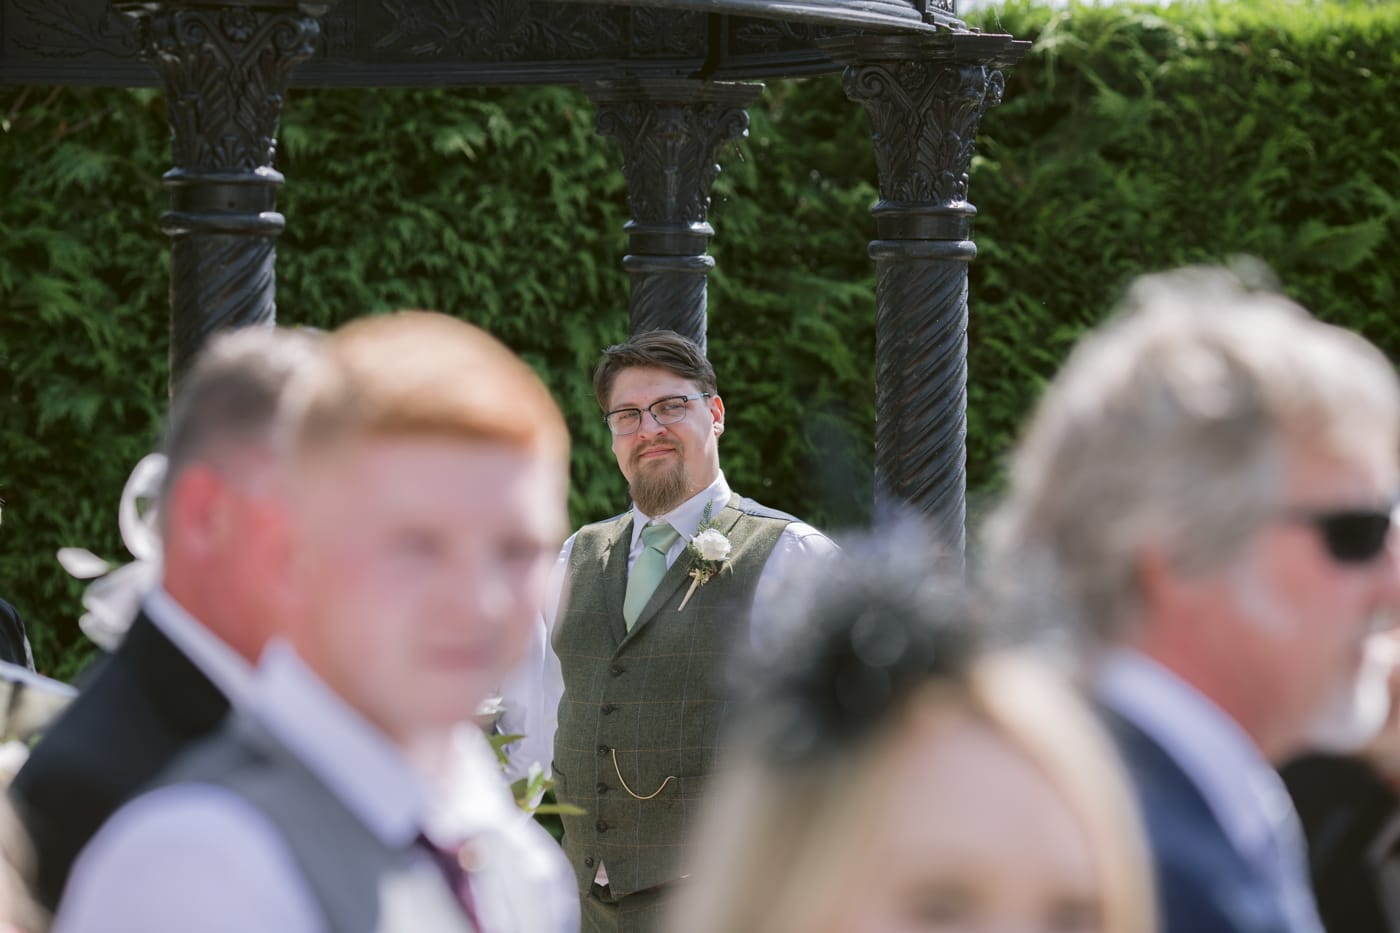 Man in background Portrait Shot at Roundthorn Country house